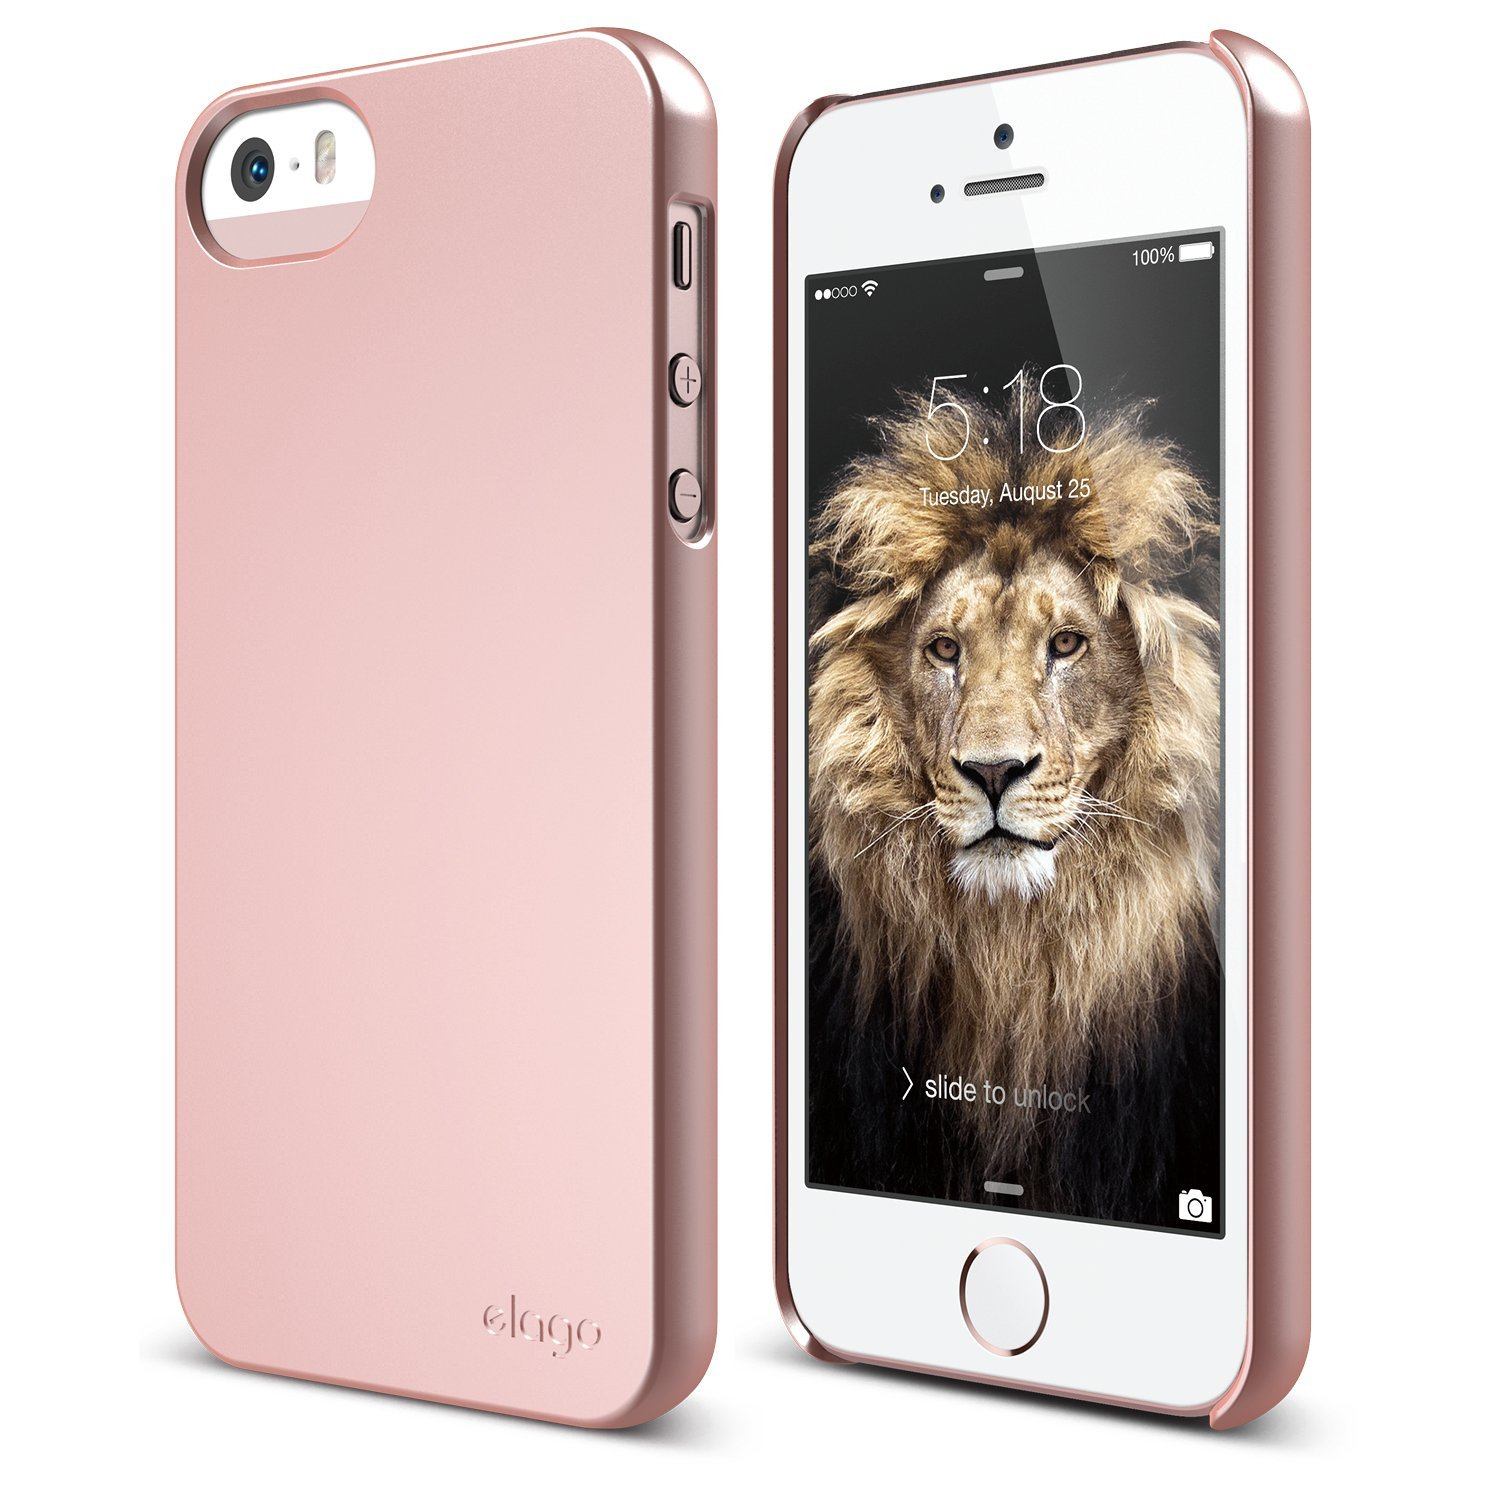 s5 slim fit 2 case for iphone 5 5s se rose gold elago europe. Black Bedroom Furniture Sets. Home Design Ideas